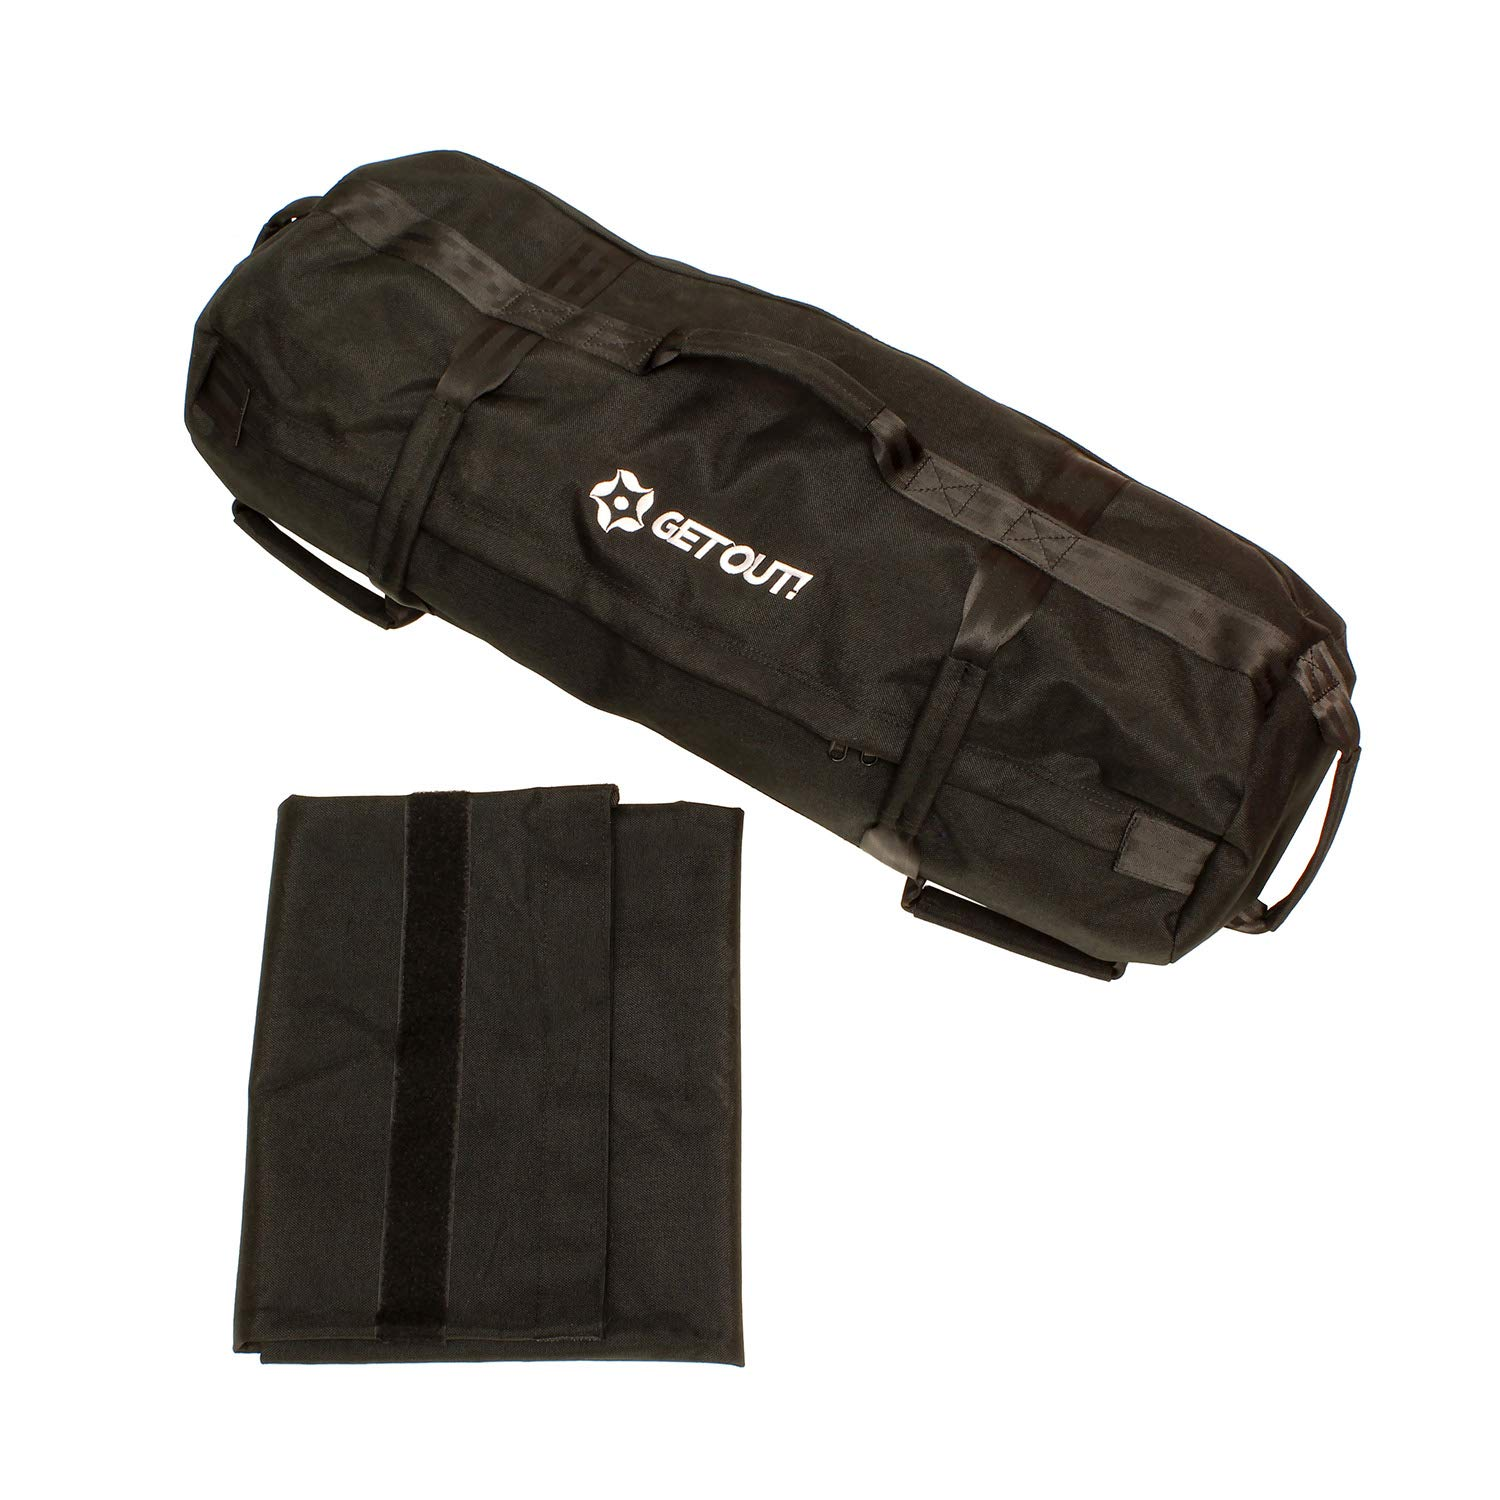 Sandbags for Fitness Get Out Weight Bags Workout Sandbags Fitness Sandbag Workout Weighted Bags for Workout